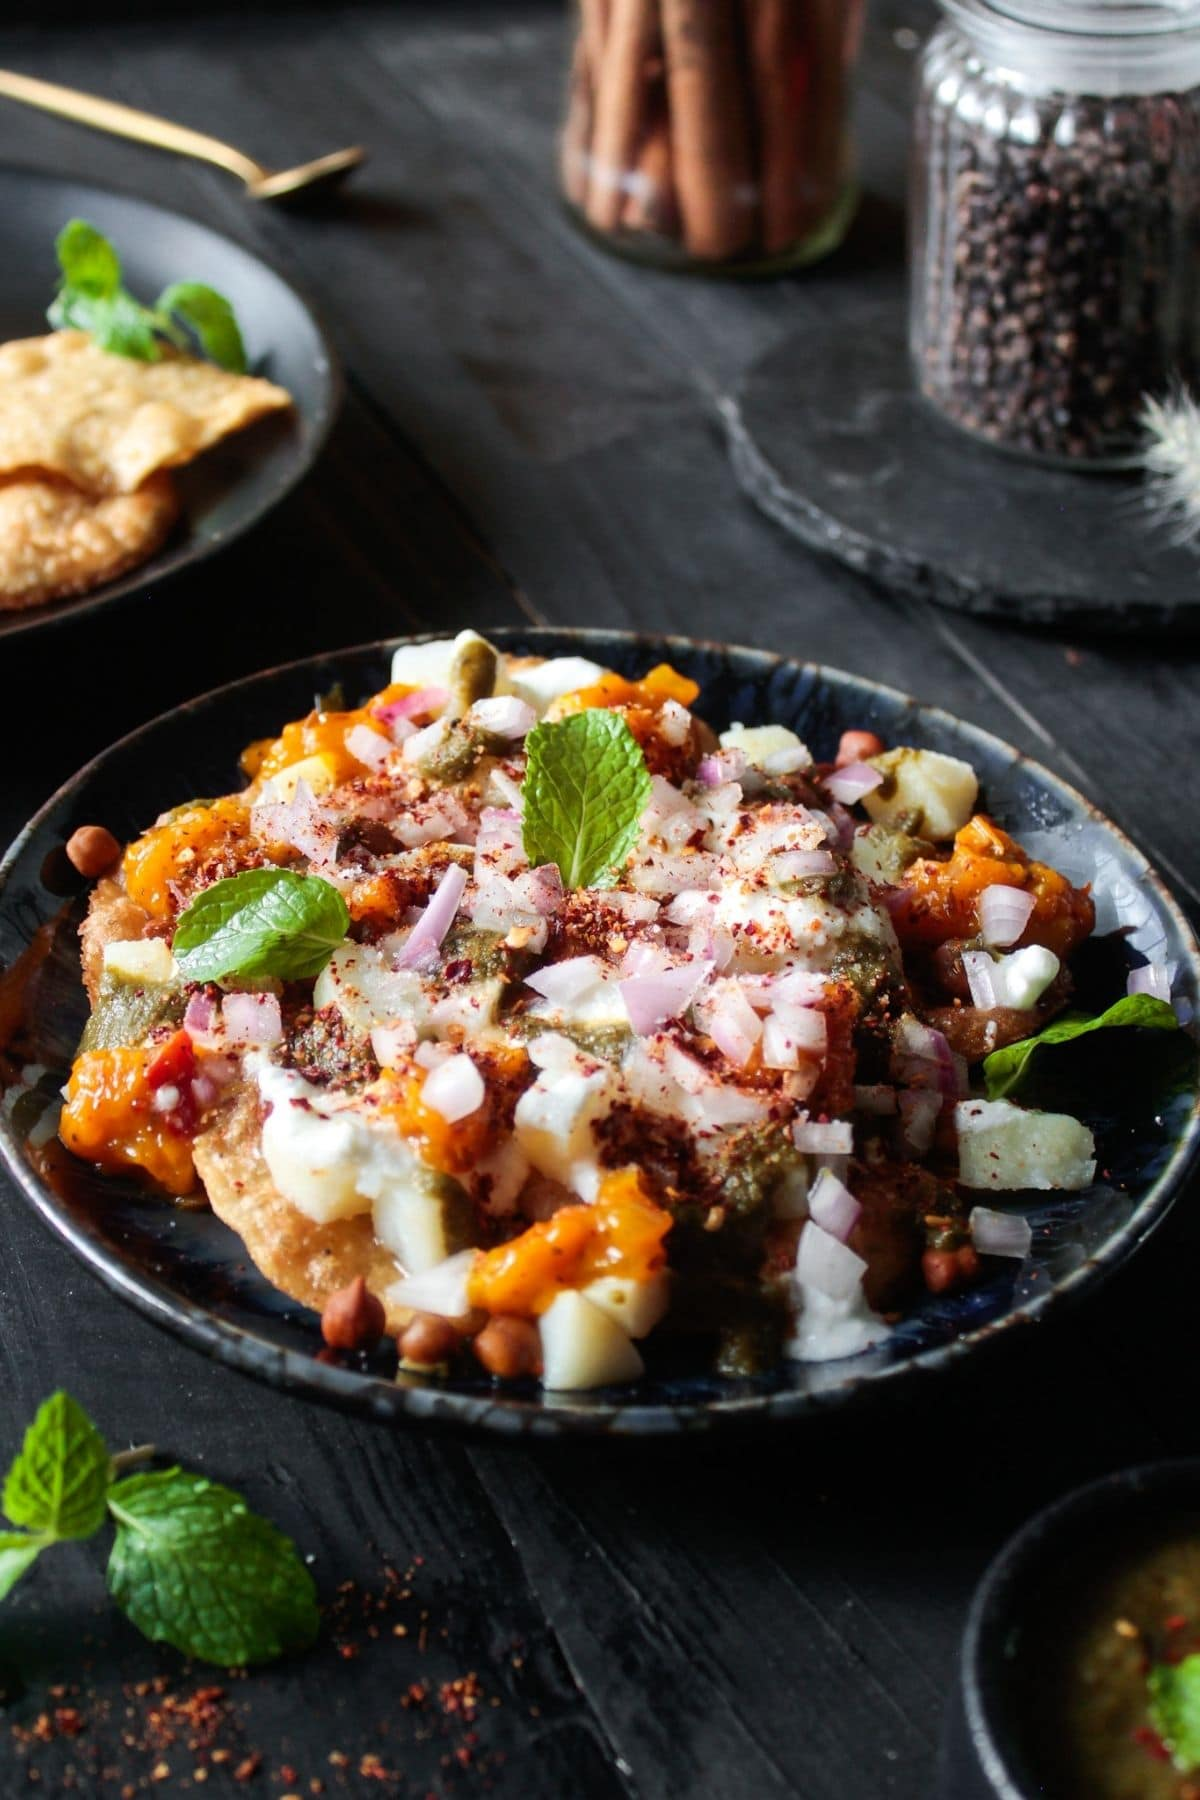 Topping papdias with mint leaves